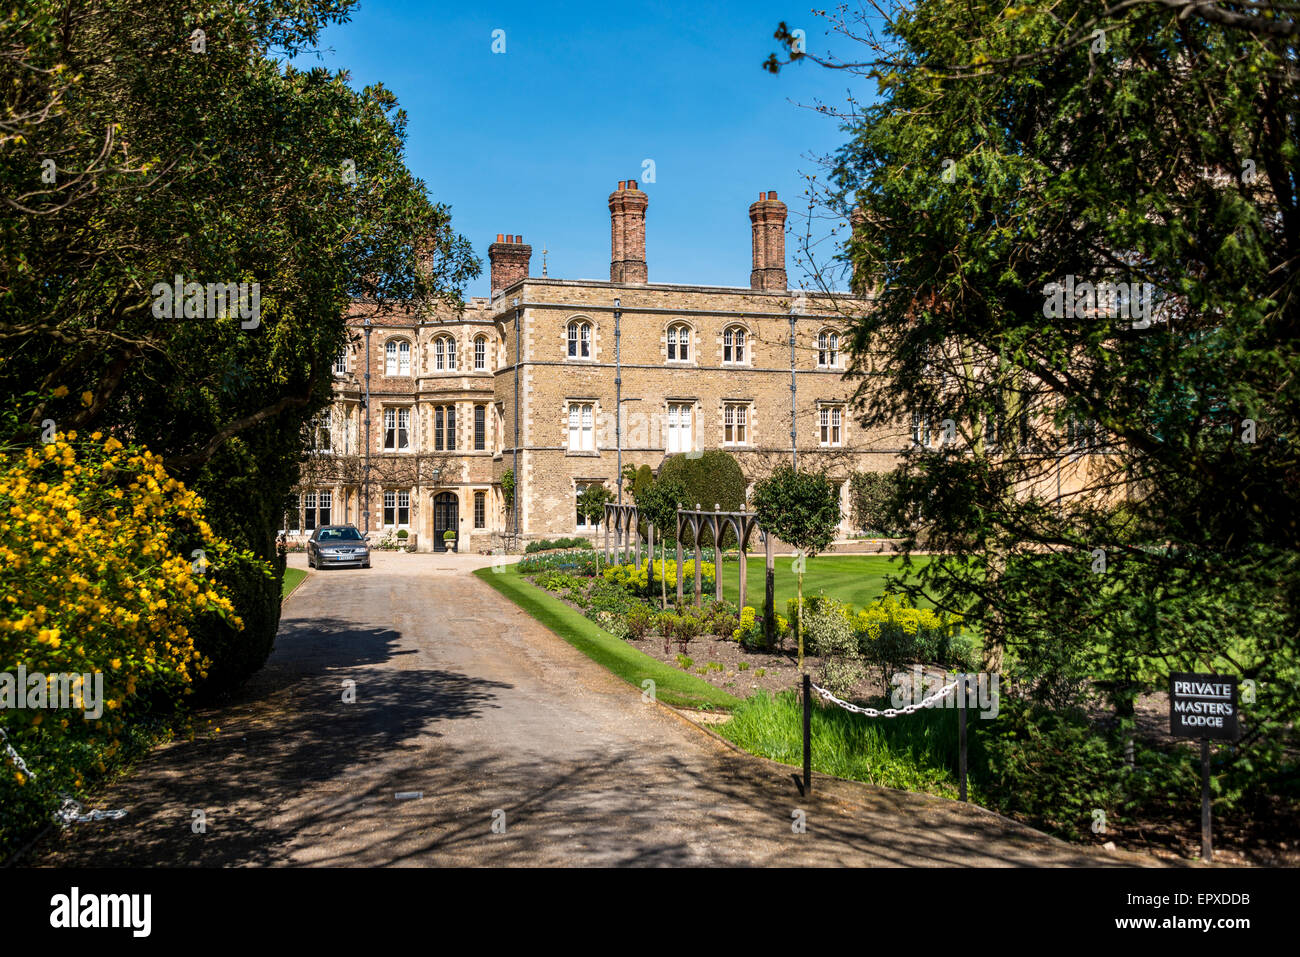 The Master's Lodge at Jesus College, a college of the University of Cambridge - Stock Image